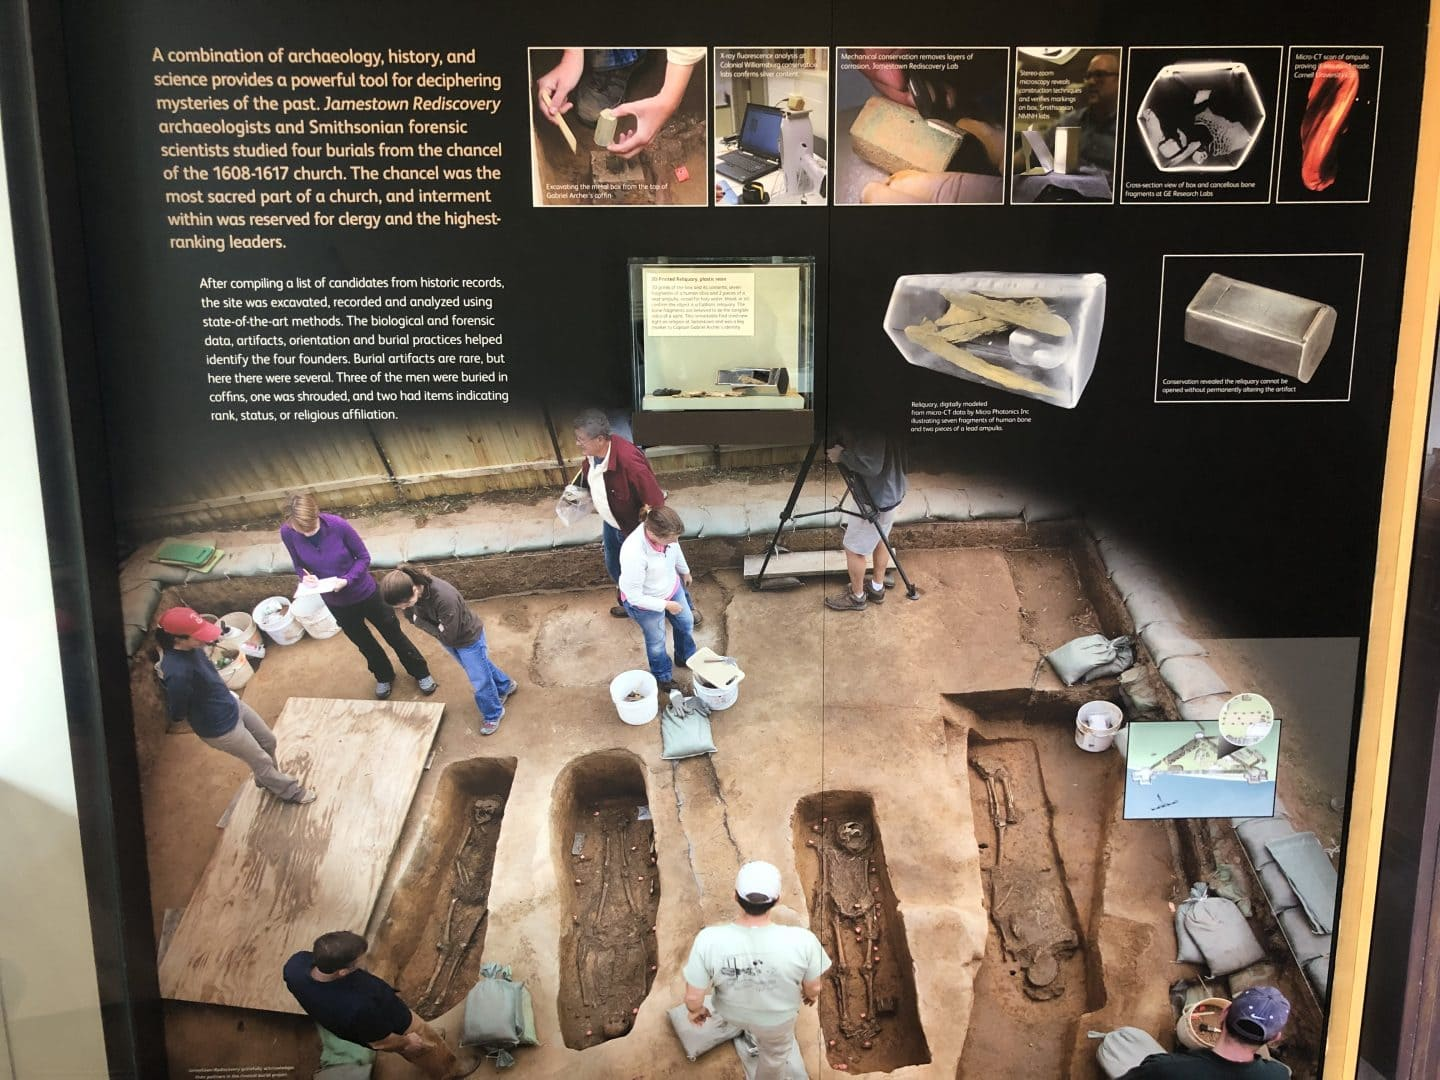 early artifacts from historic Jamestown in Virginia